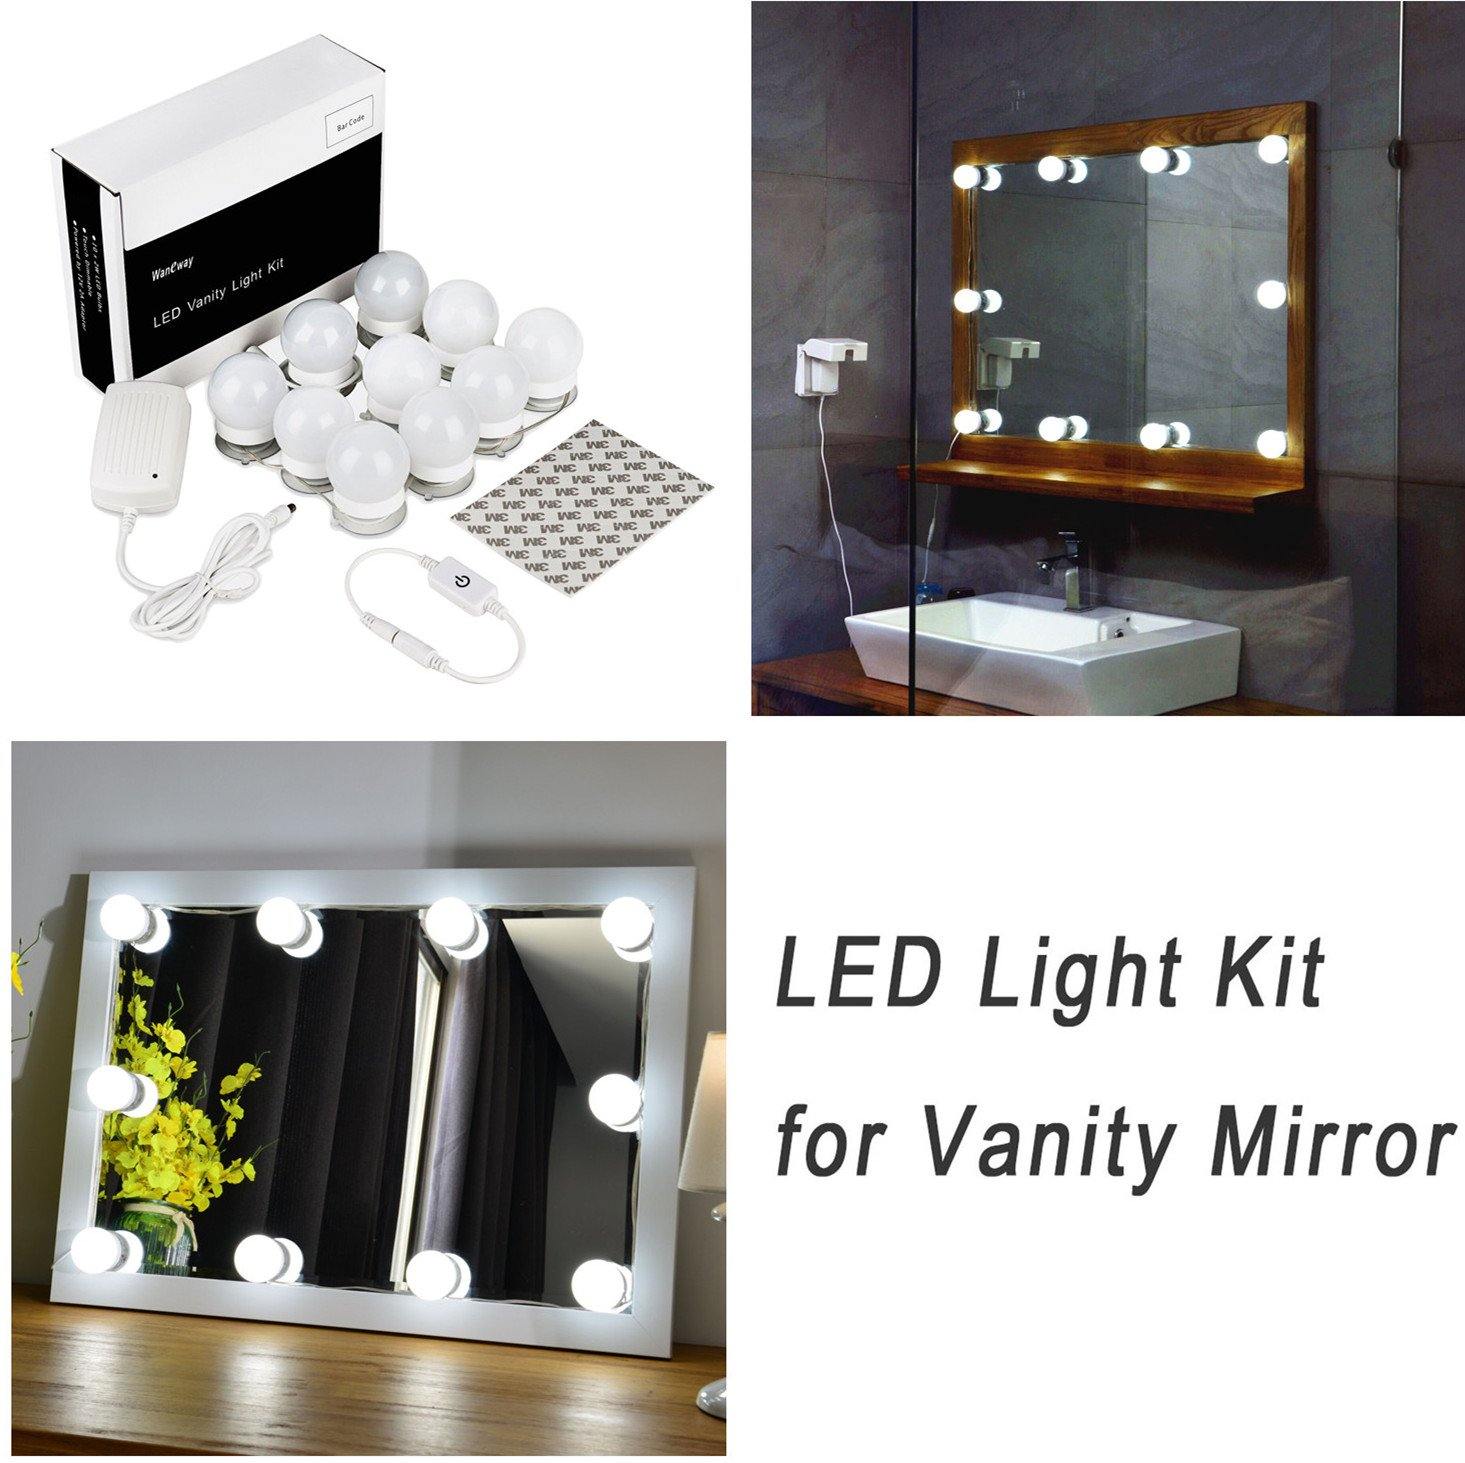 hollywood style led vanity mirror lights kit for makeup dressing table vanity set mirrors with dimmer and power supply plug in lighting fixture strip